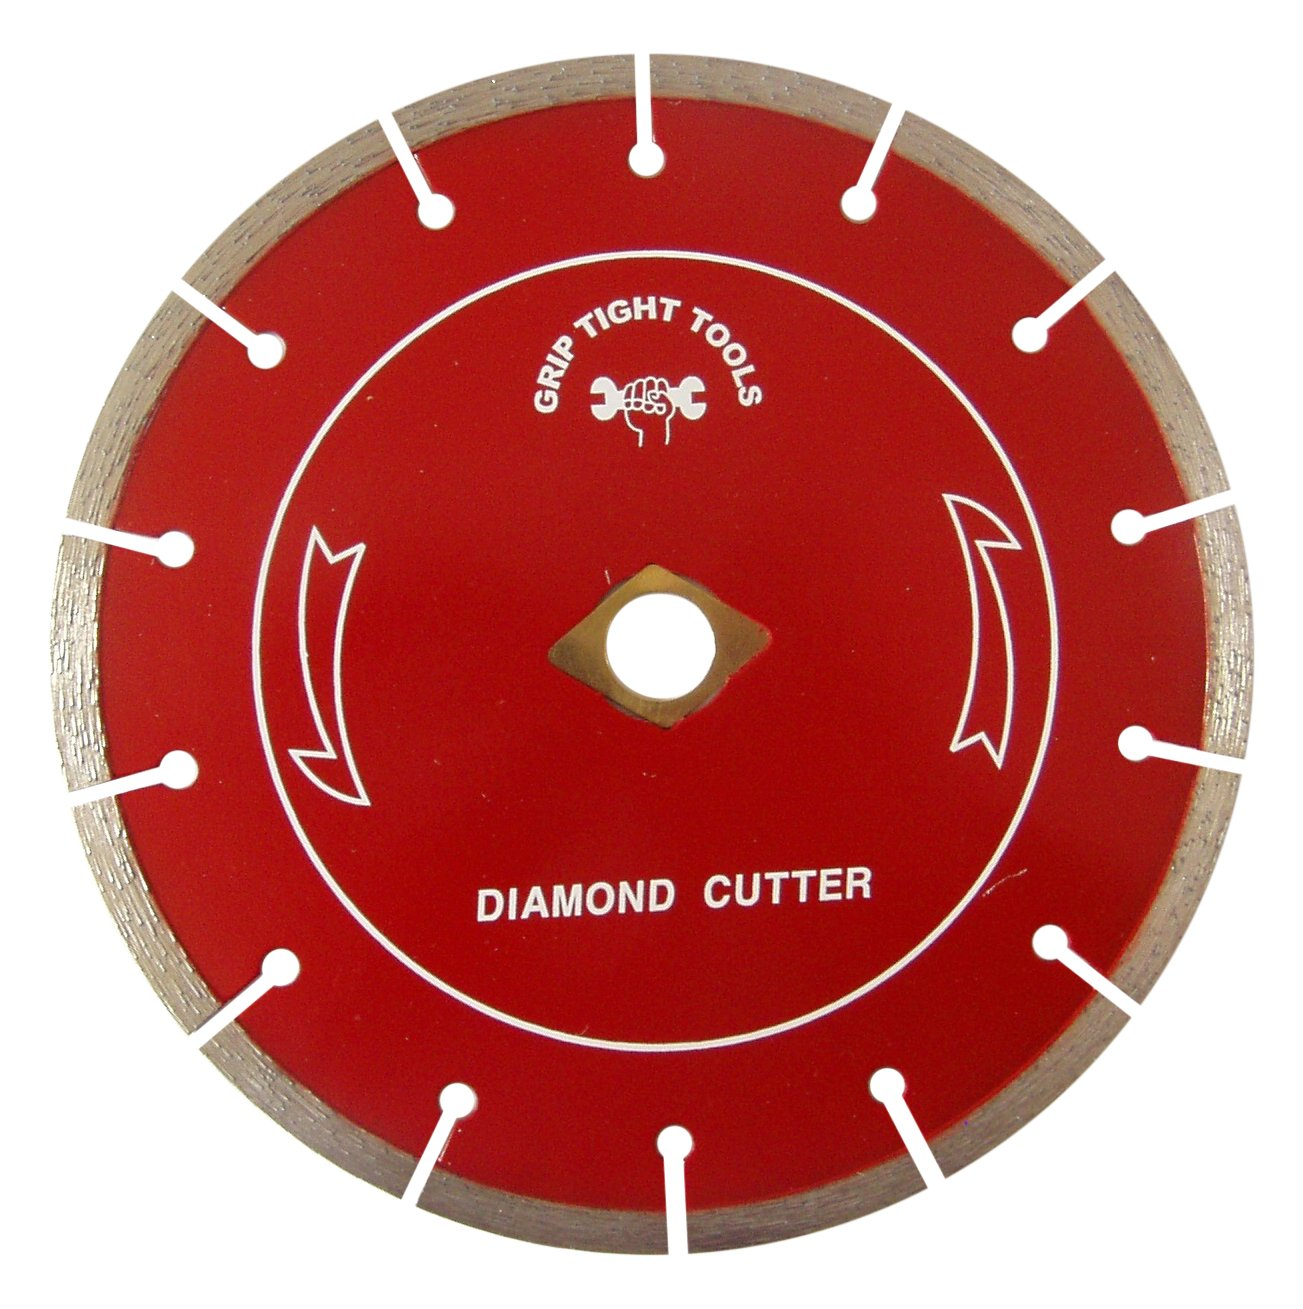 Grip Tight Tools Professional Quality Segment Cut Diamond Blade For Concrete, Granite and Marble, 7-Inch (Dry)